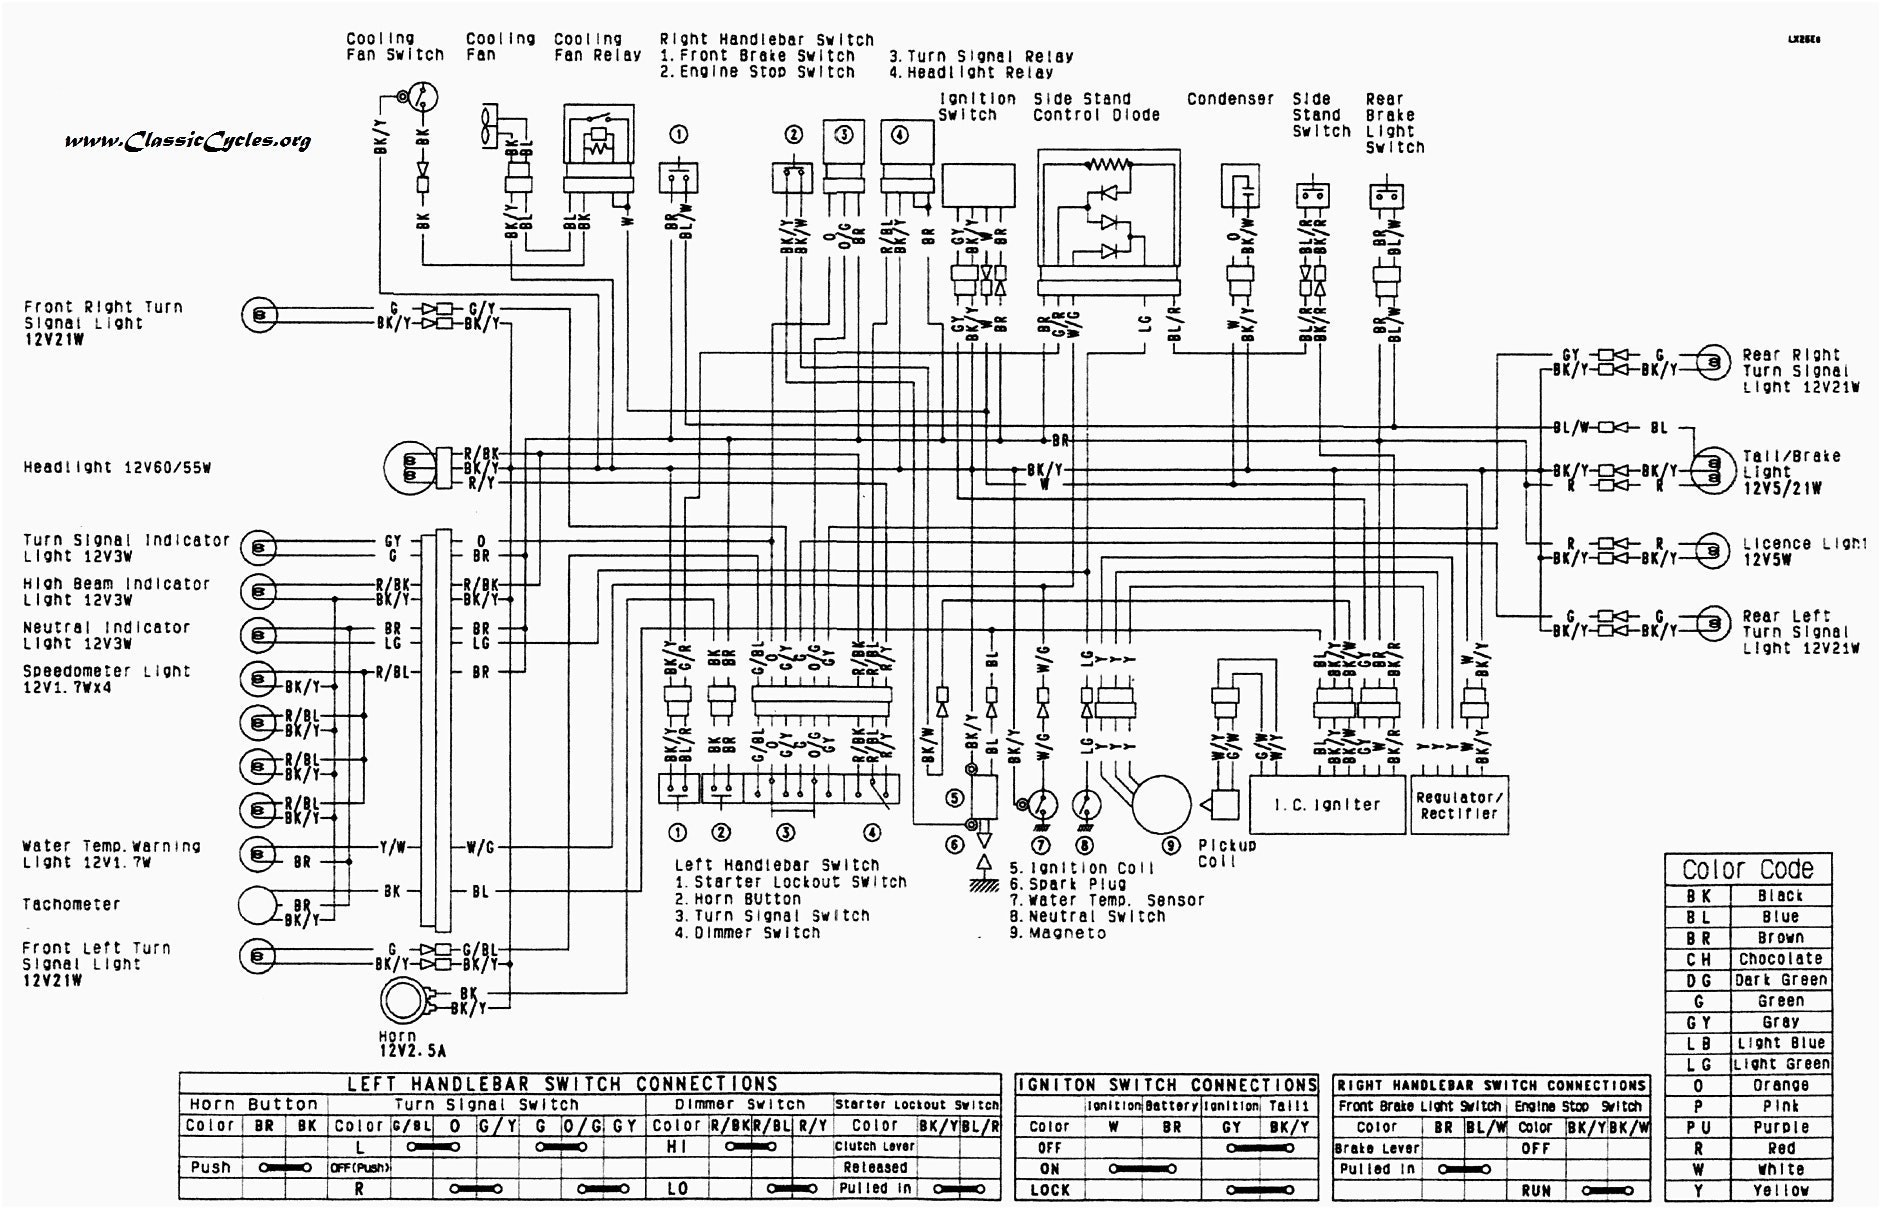 atv wiring diagram besides can am ds 450 wiring diagram besides can rh paletteparty co